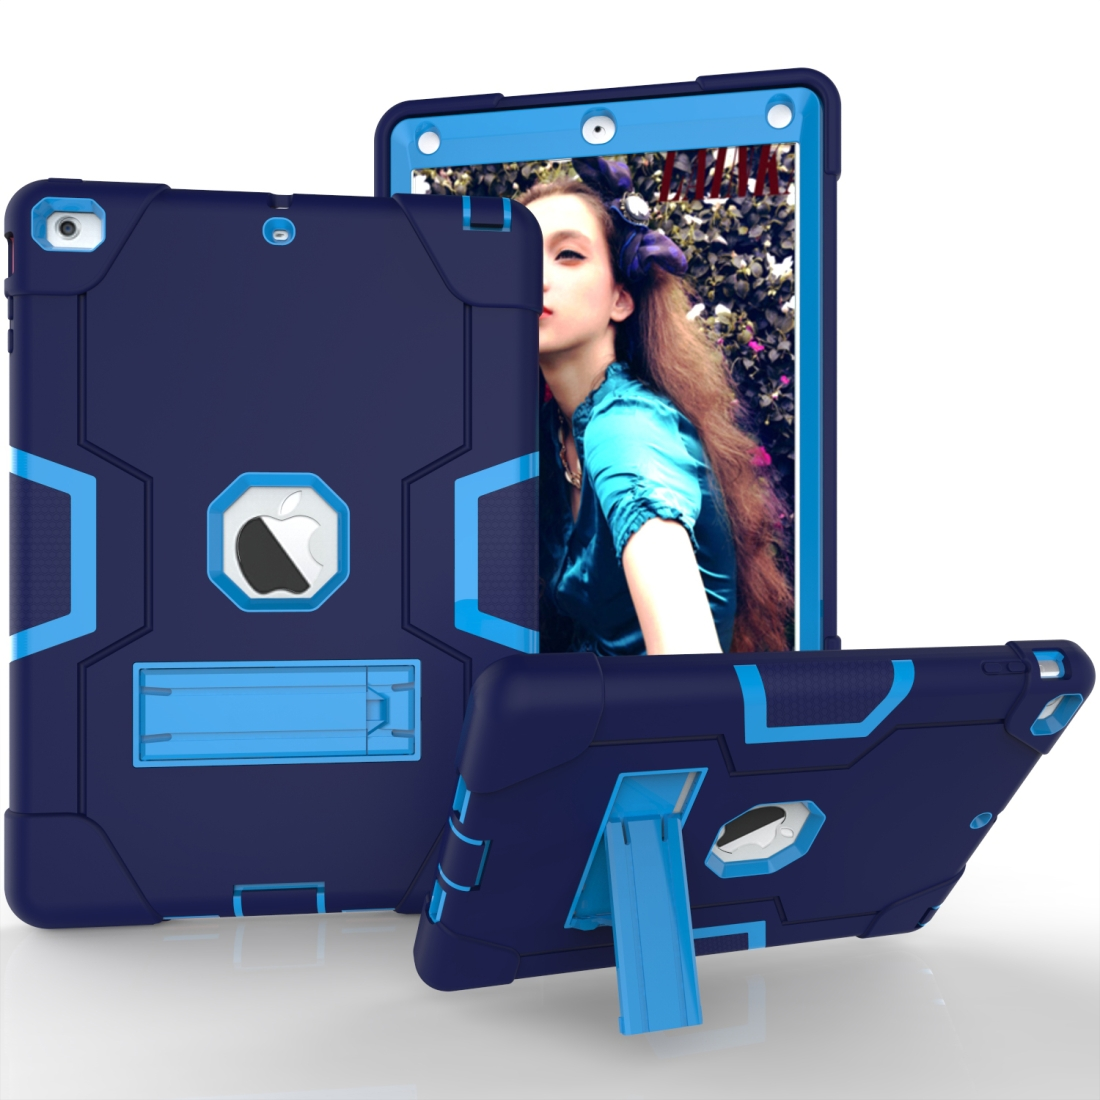 iPad Air Cover Featuring Contrasting Colors In A Tough Durable Protective Armor Case (Navy/Blue)